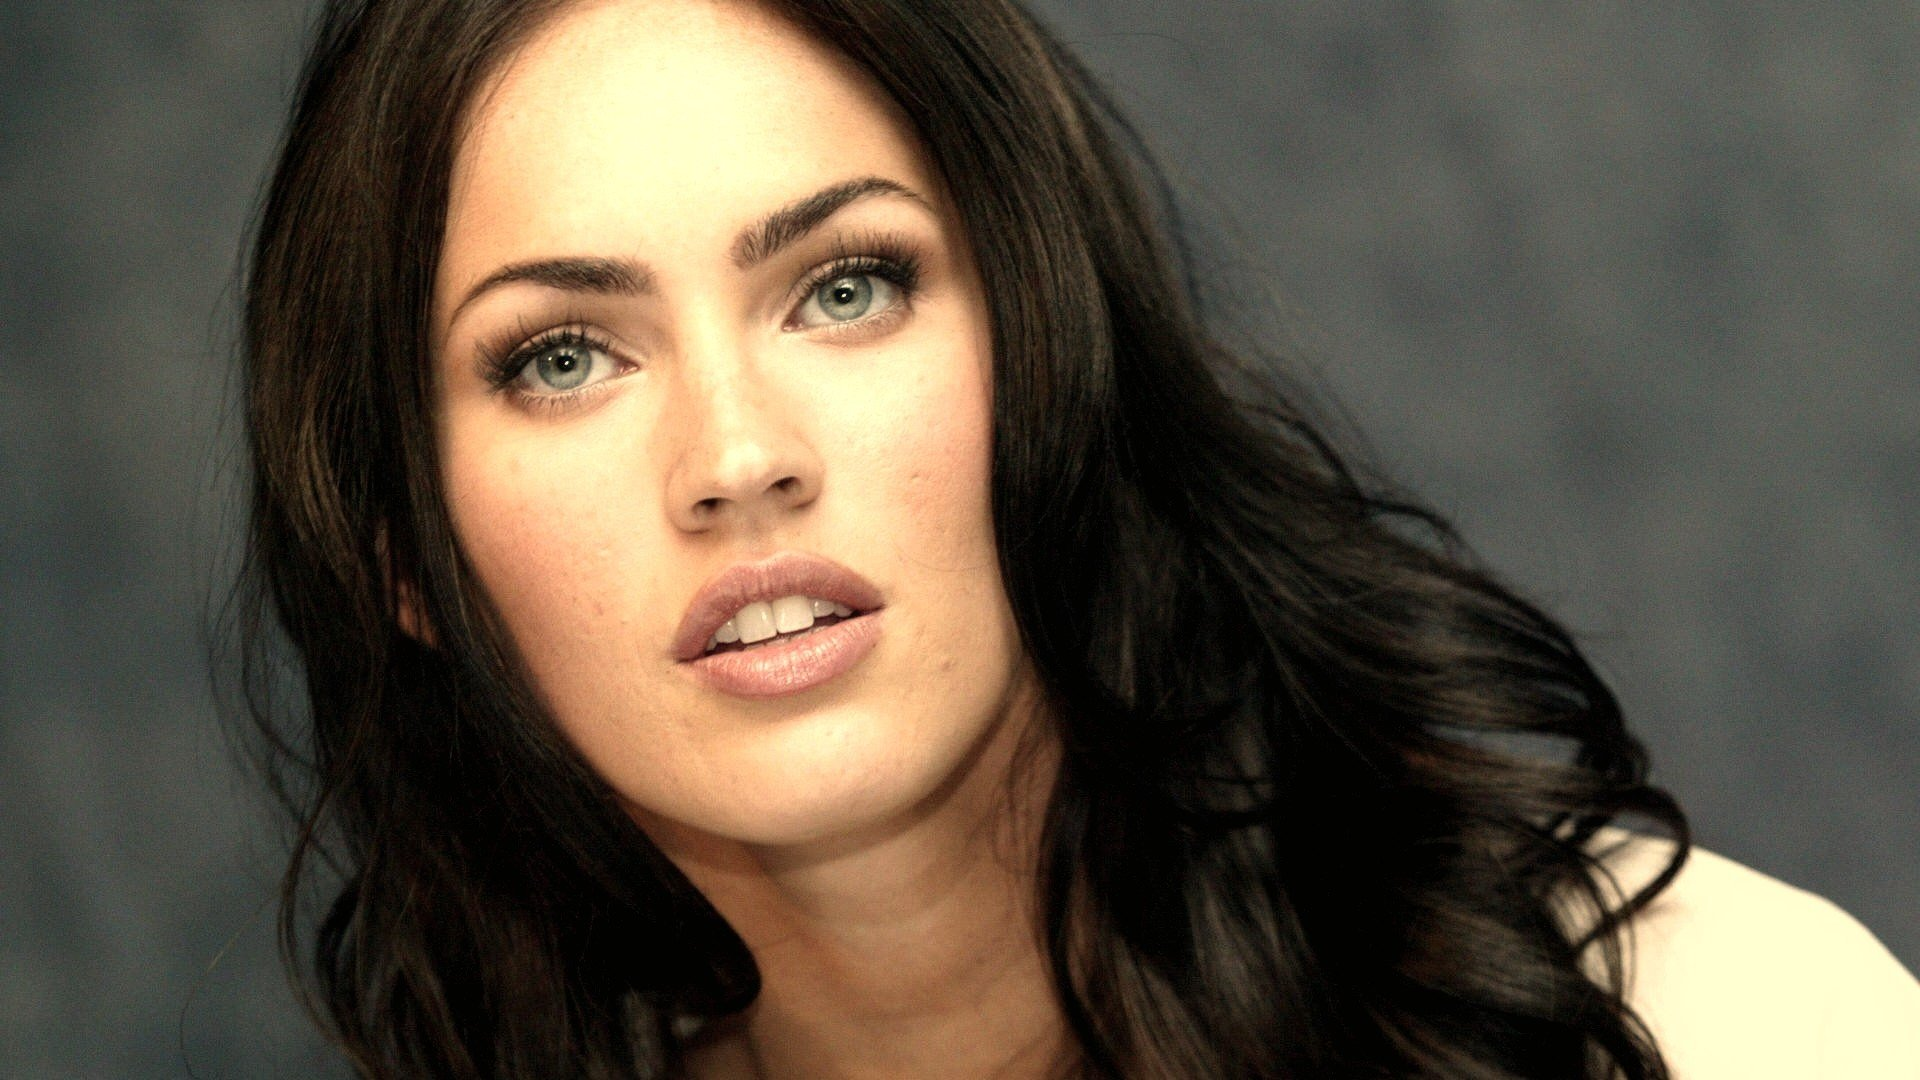 Megan Fox 1080p HD Wallpaper Girls HD Wallpapers Source 1920x1080